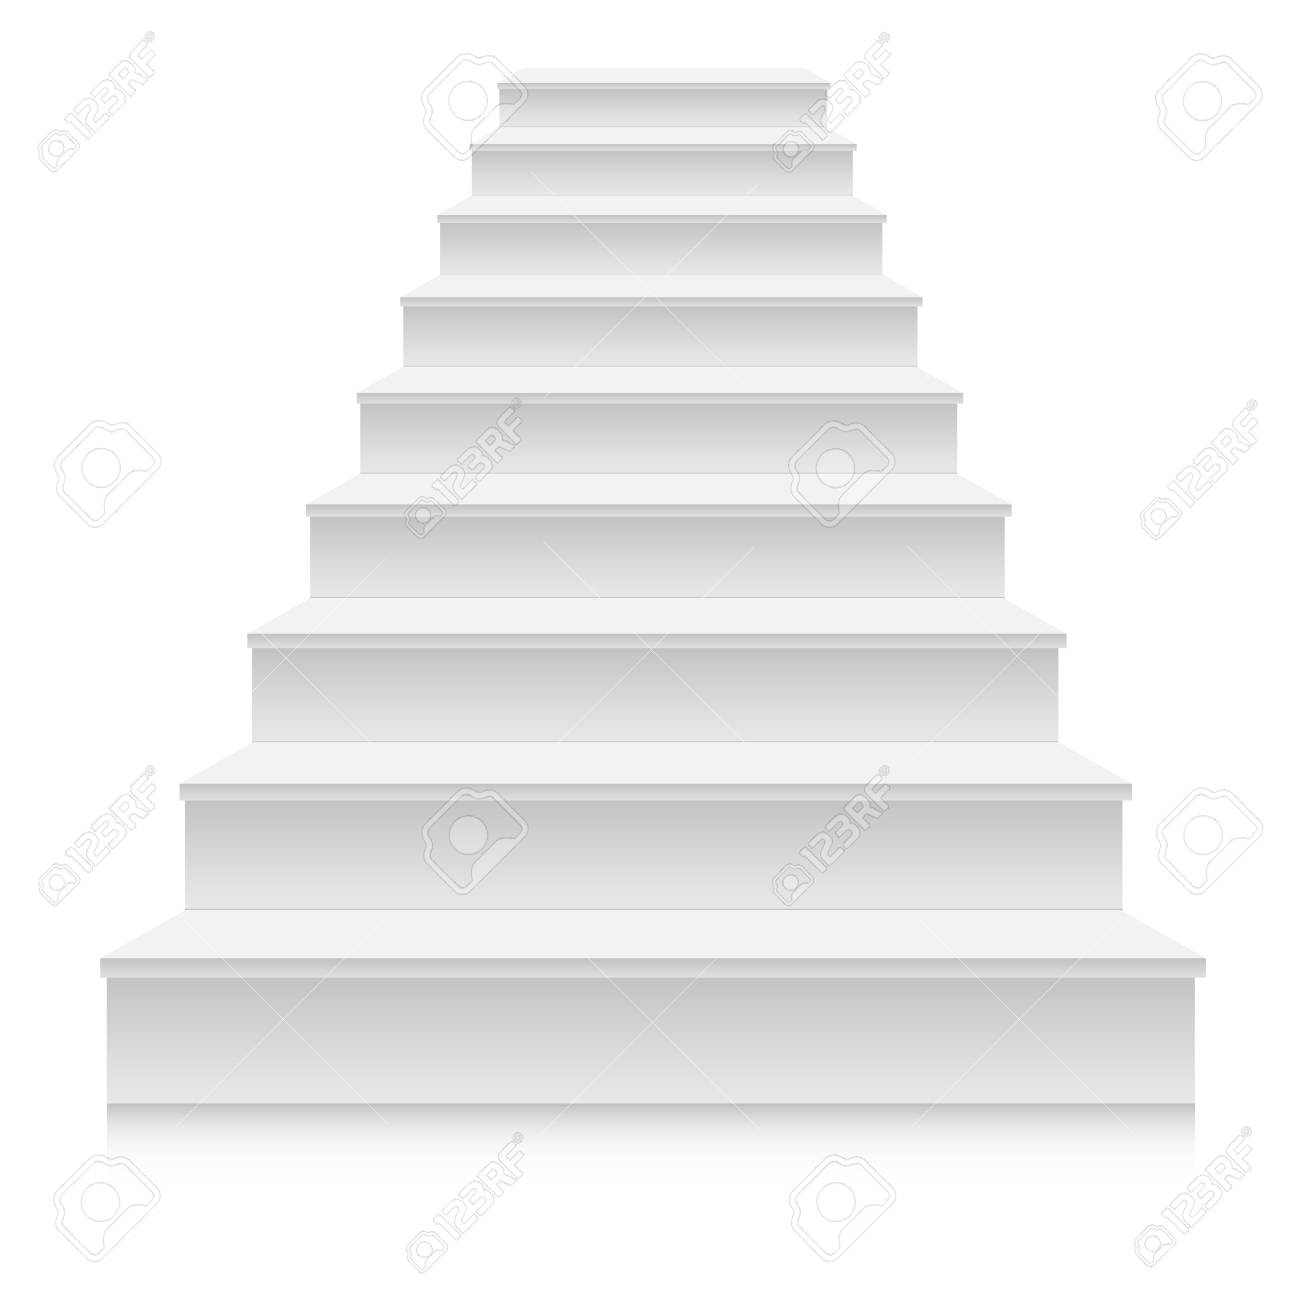 White stair template front view  3D isolated vector illustration